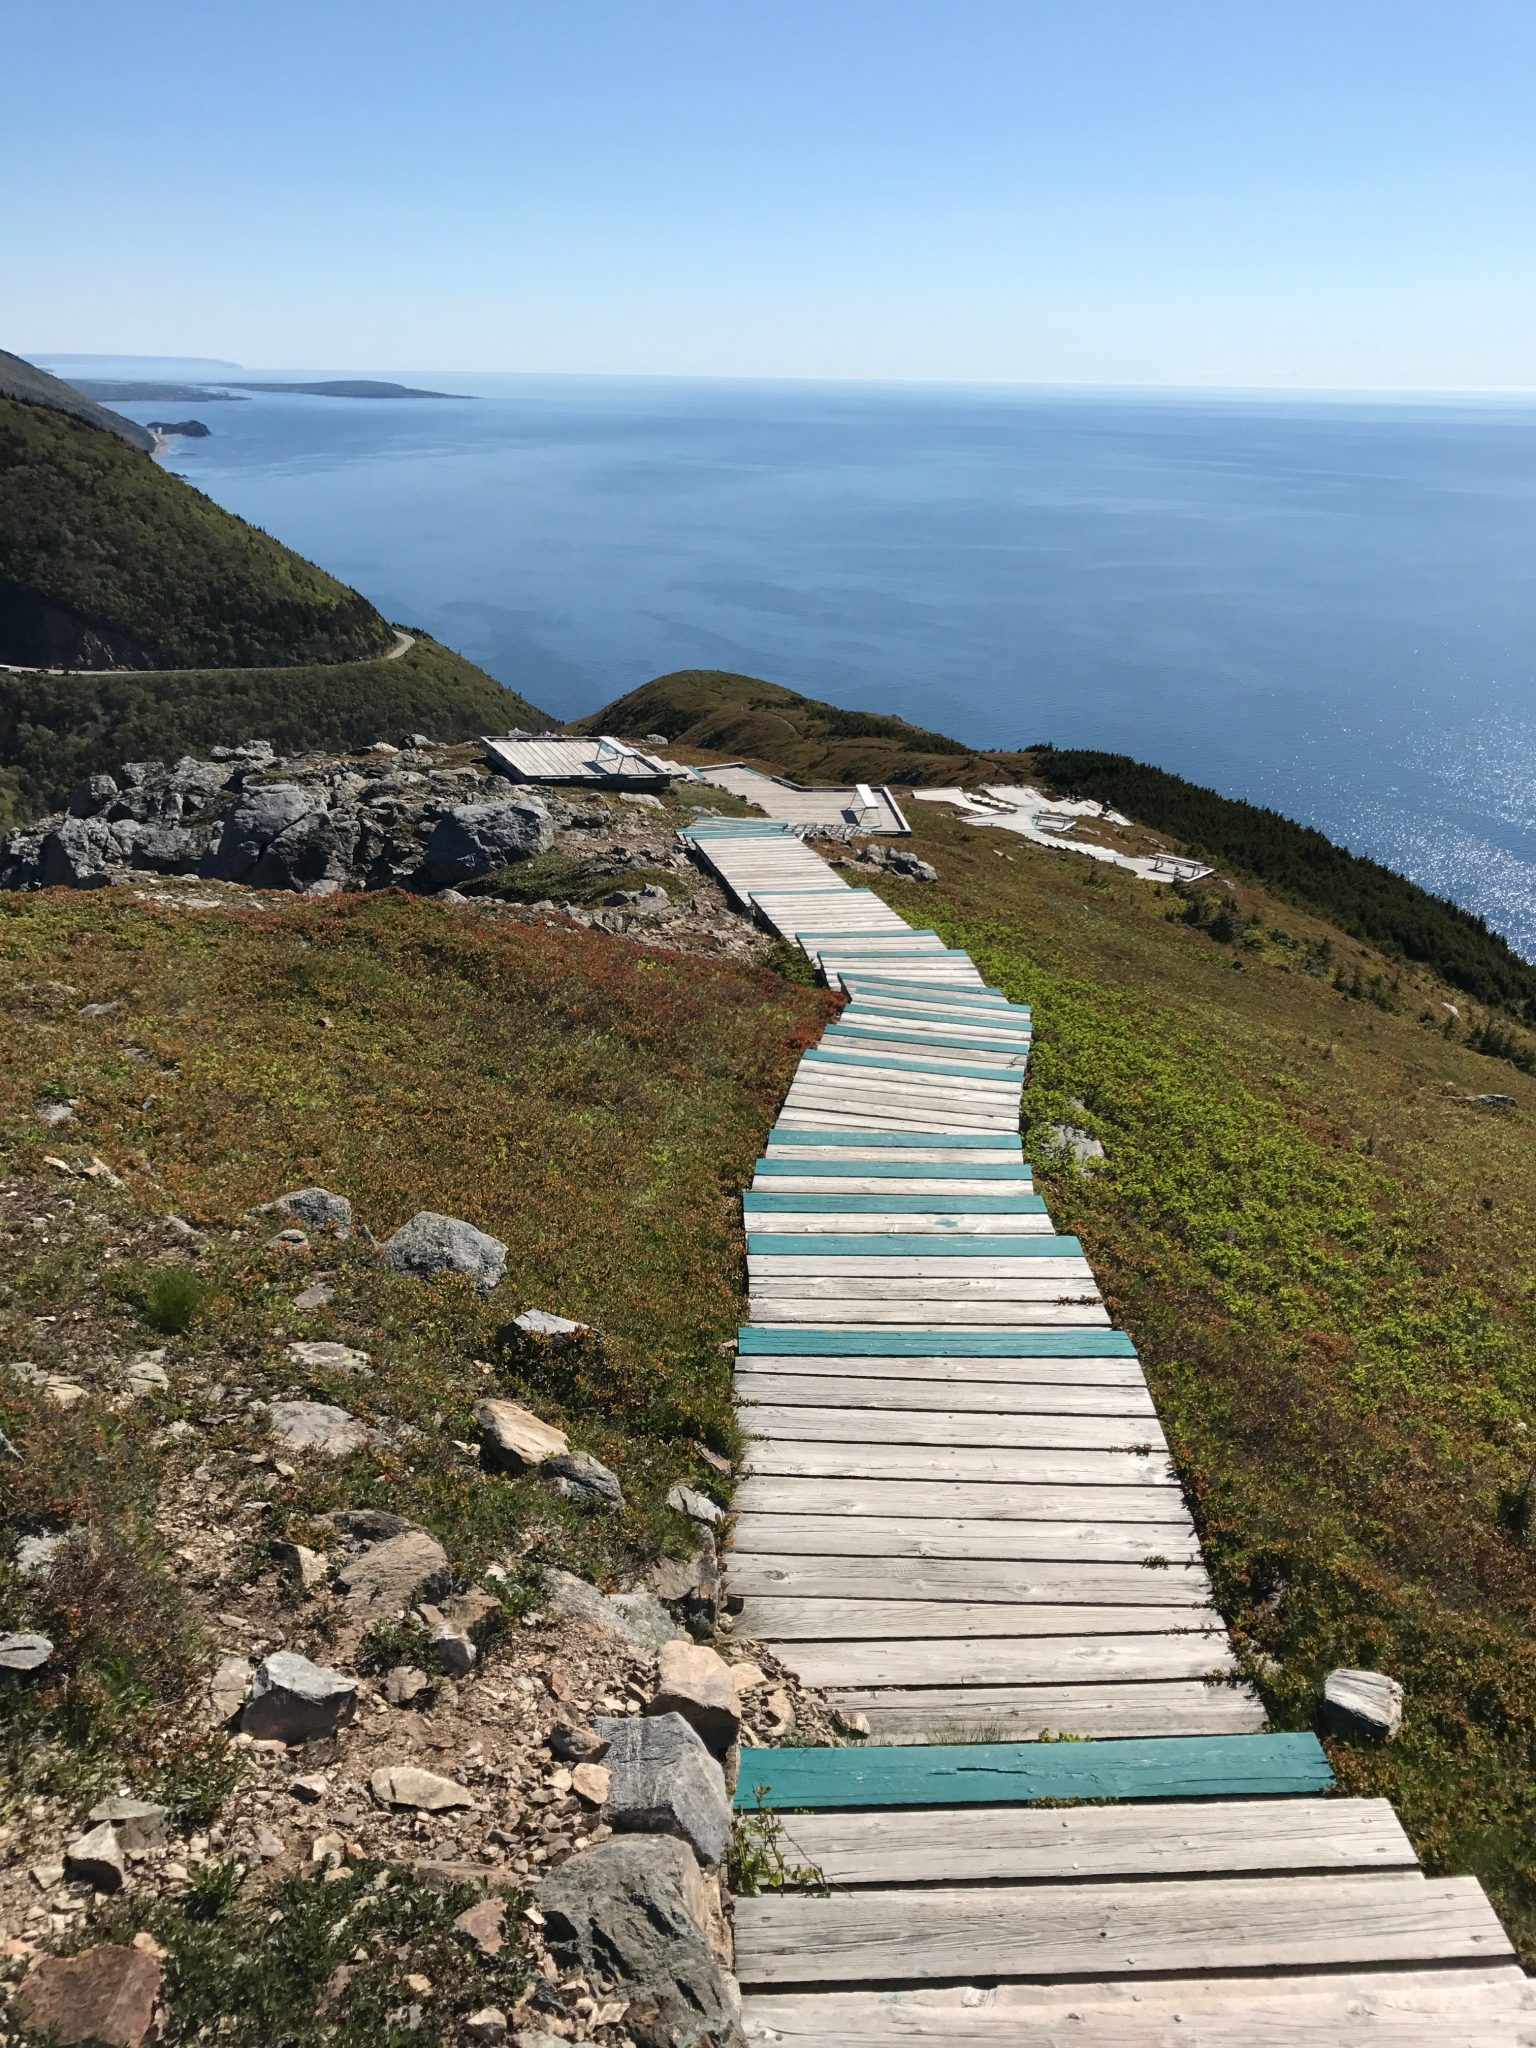 Skyline Trail i Cape Breton National Park, Nova Scotia